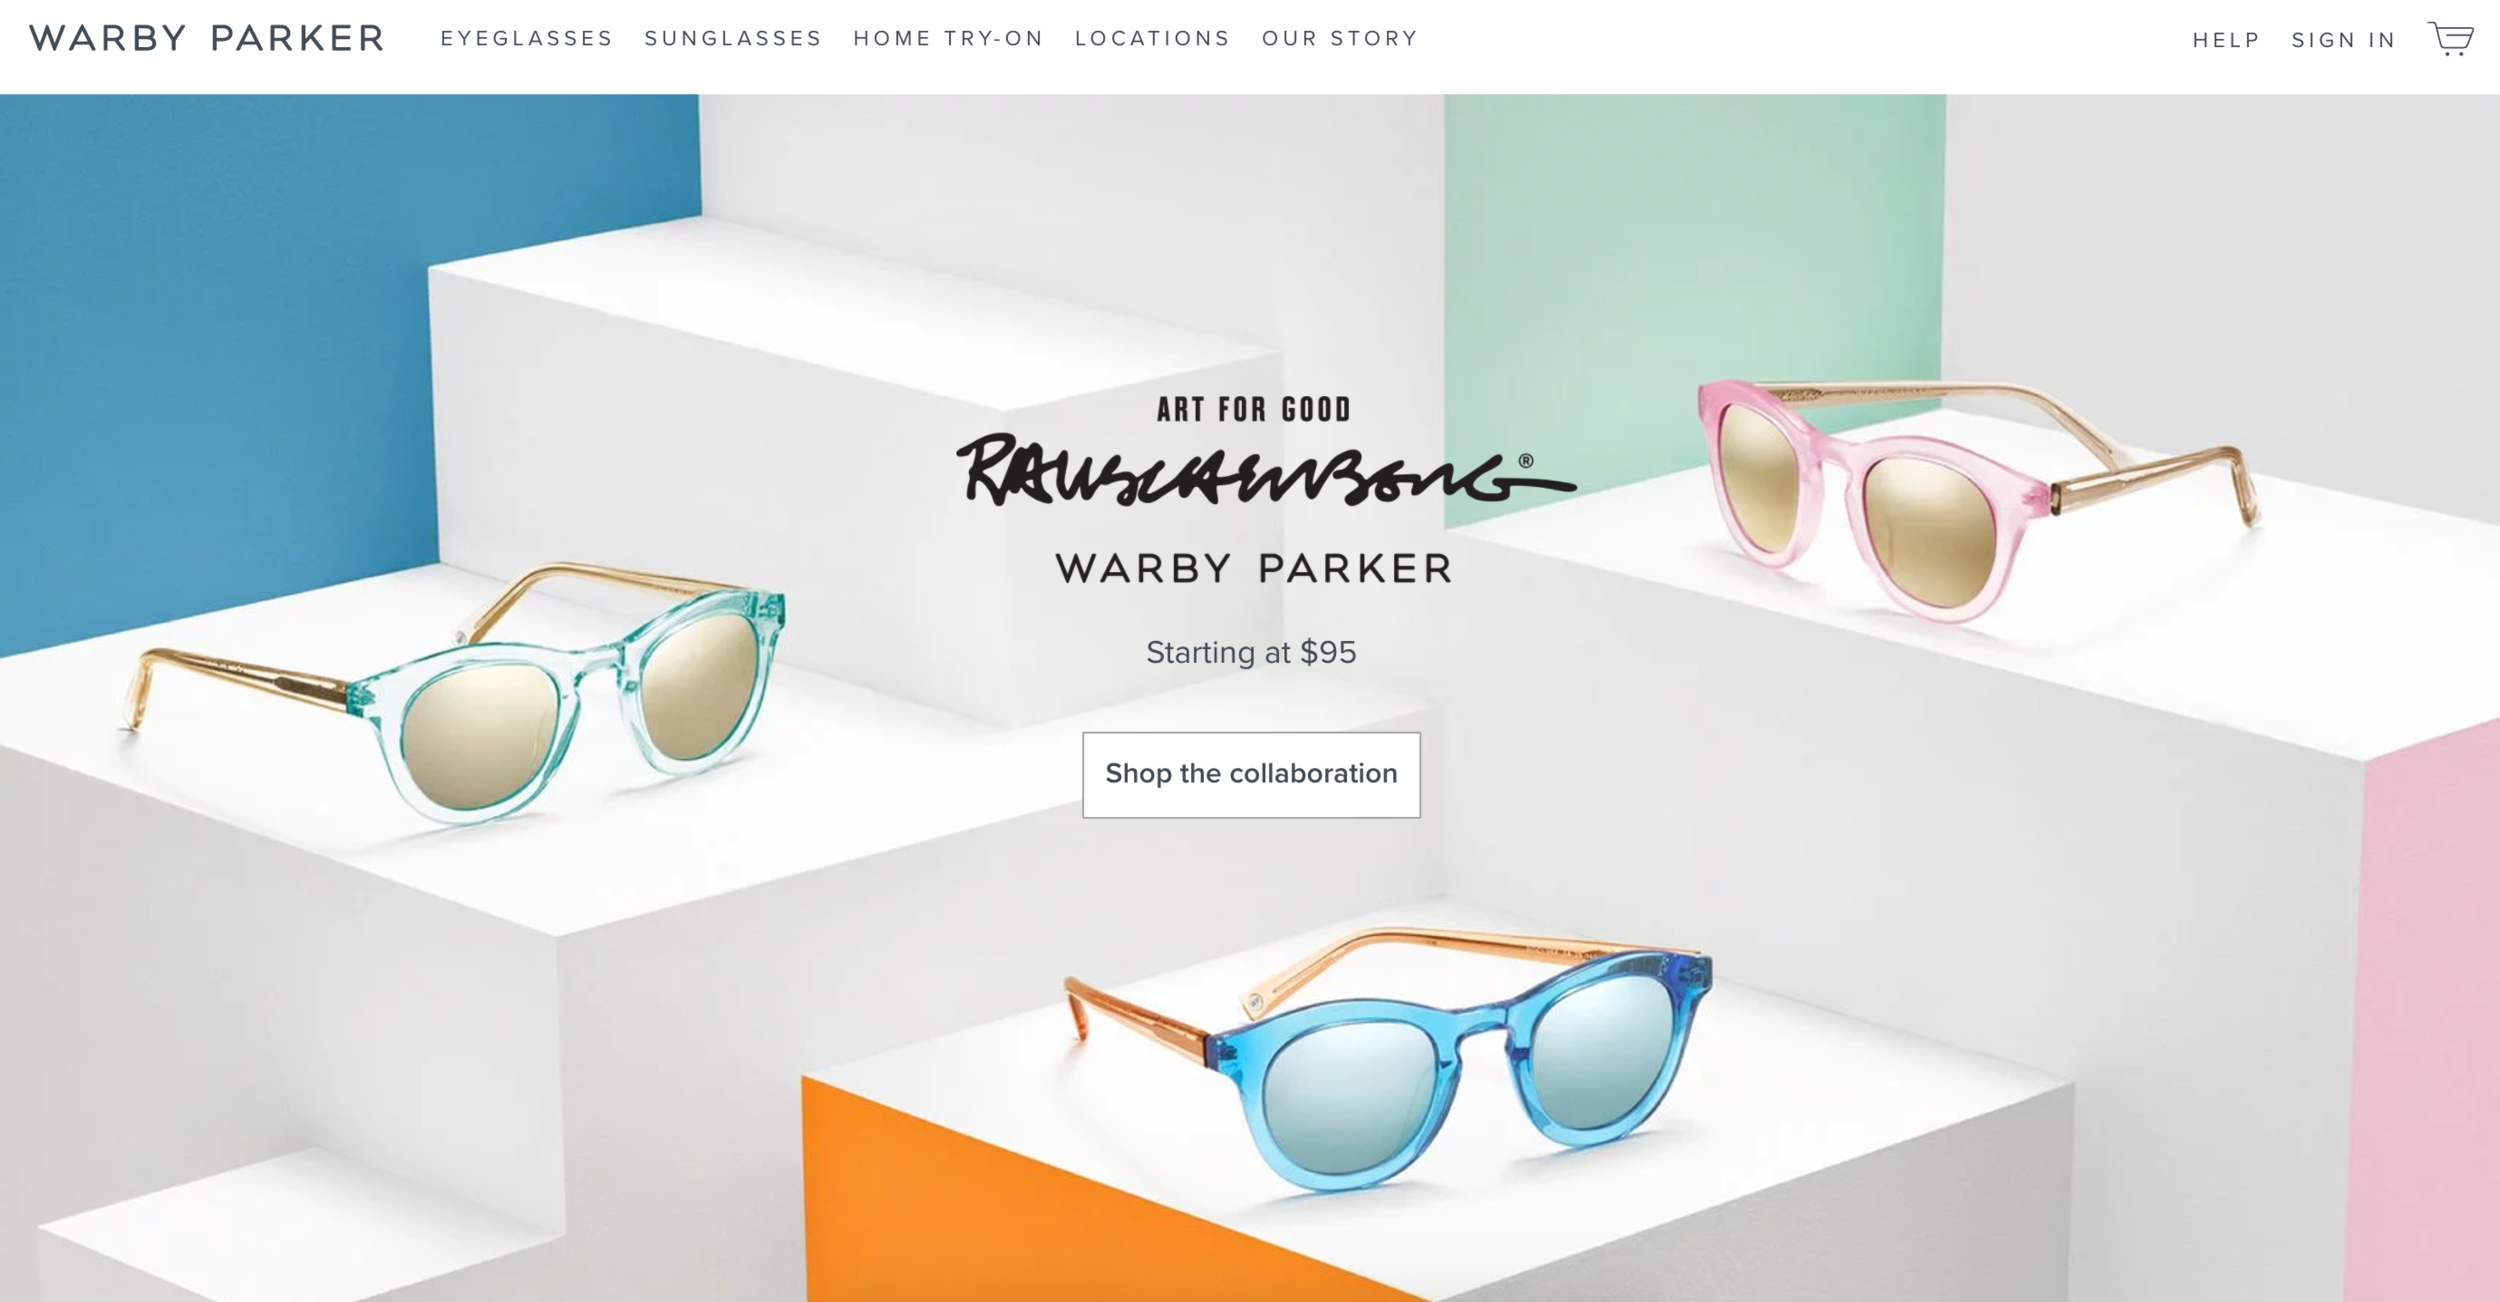 Warby Parker branding example